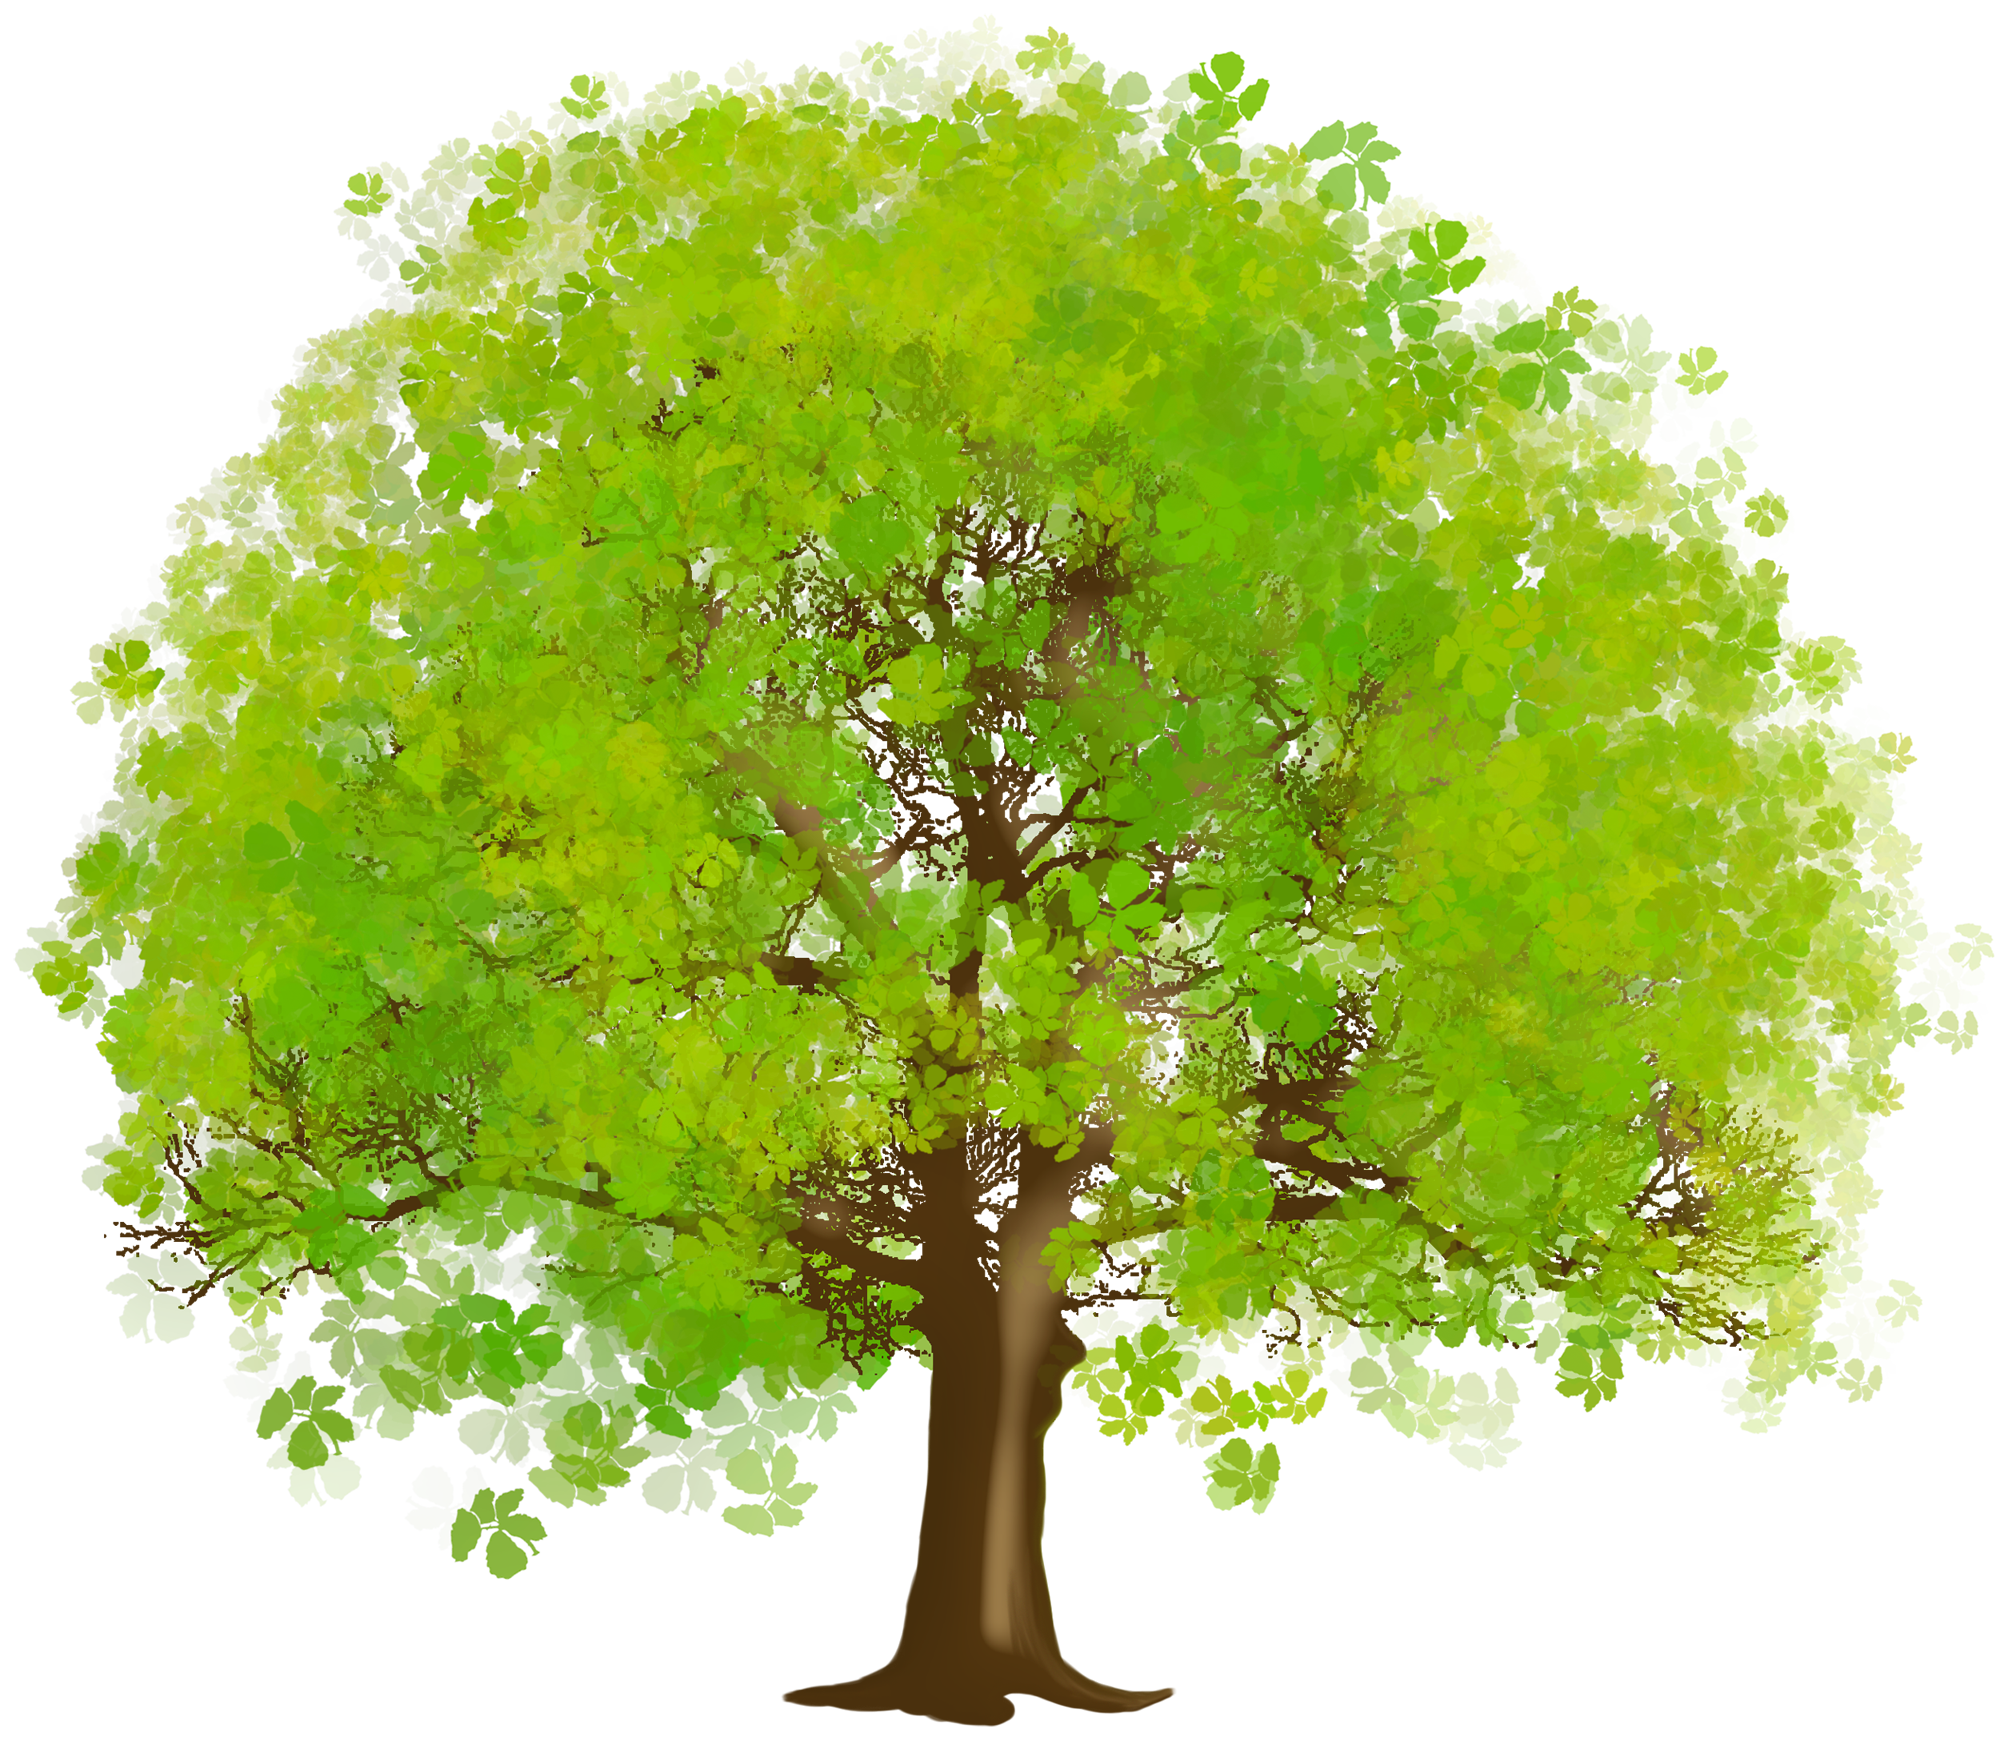 Greentree clipart clipart transparent download Free Tree Cliparts, Download Free Clip Art, Free Clip Art on ... clipart transparent download